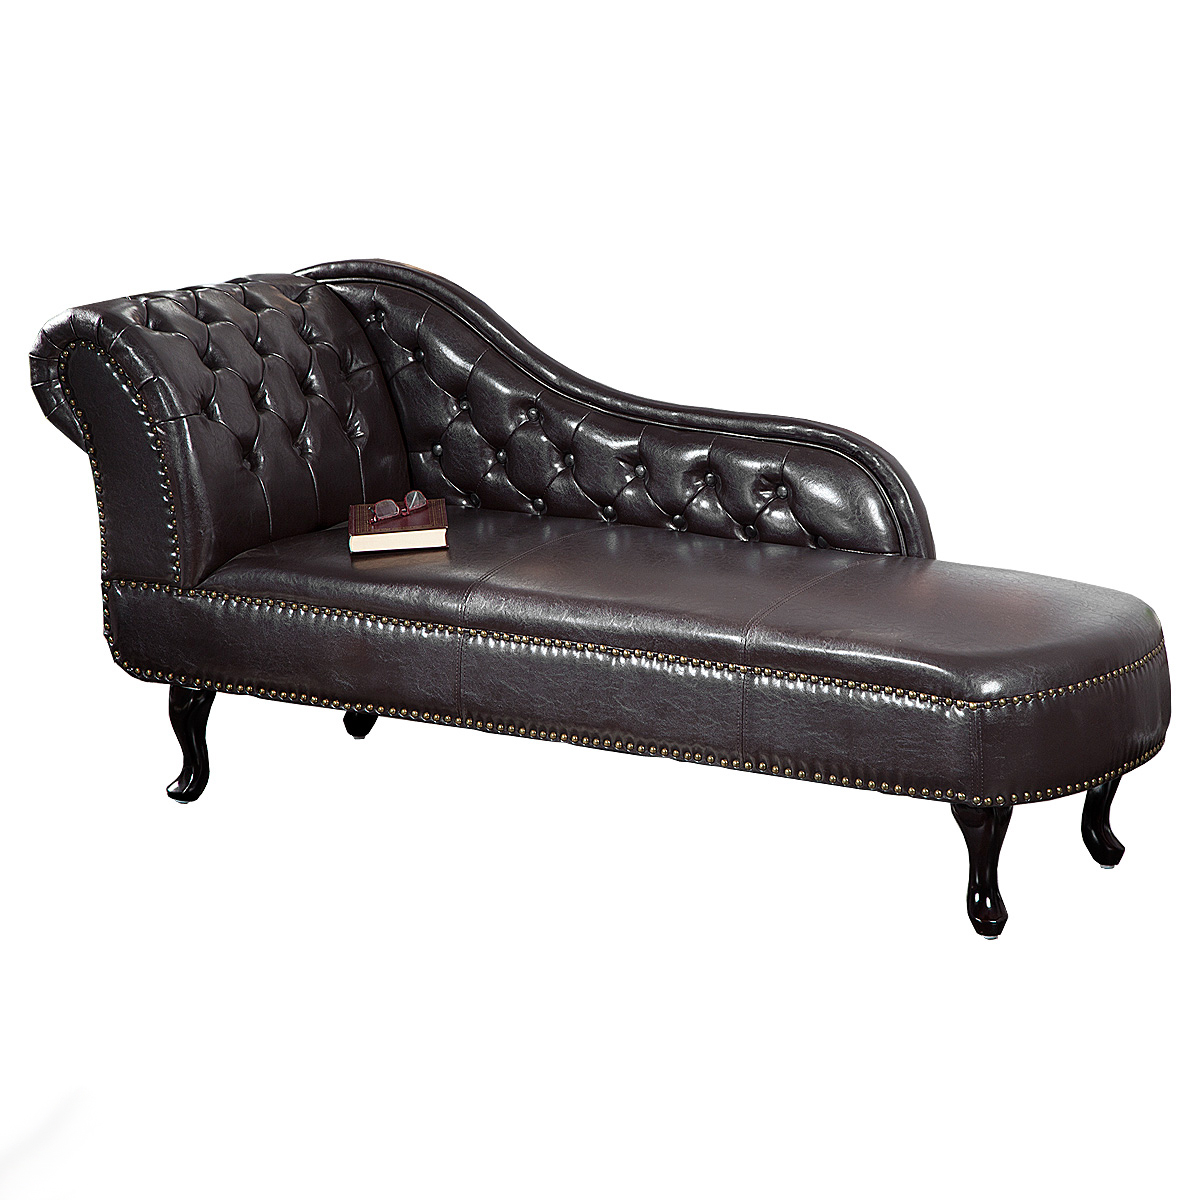 recamiere chesterfield chaiselongue sofa lederlook dark coffee dunkel braun ebay. Black Bedroom Furniture Sets. Home Design Ideas